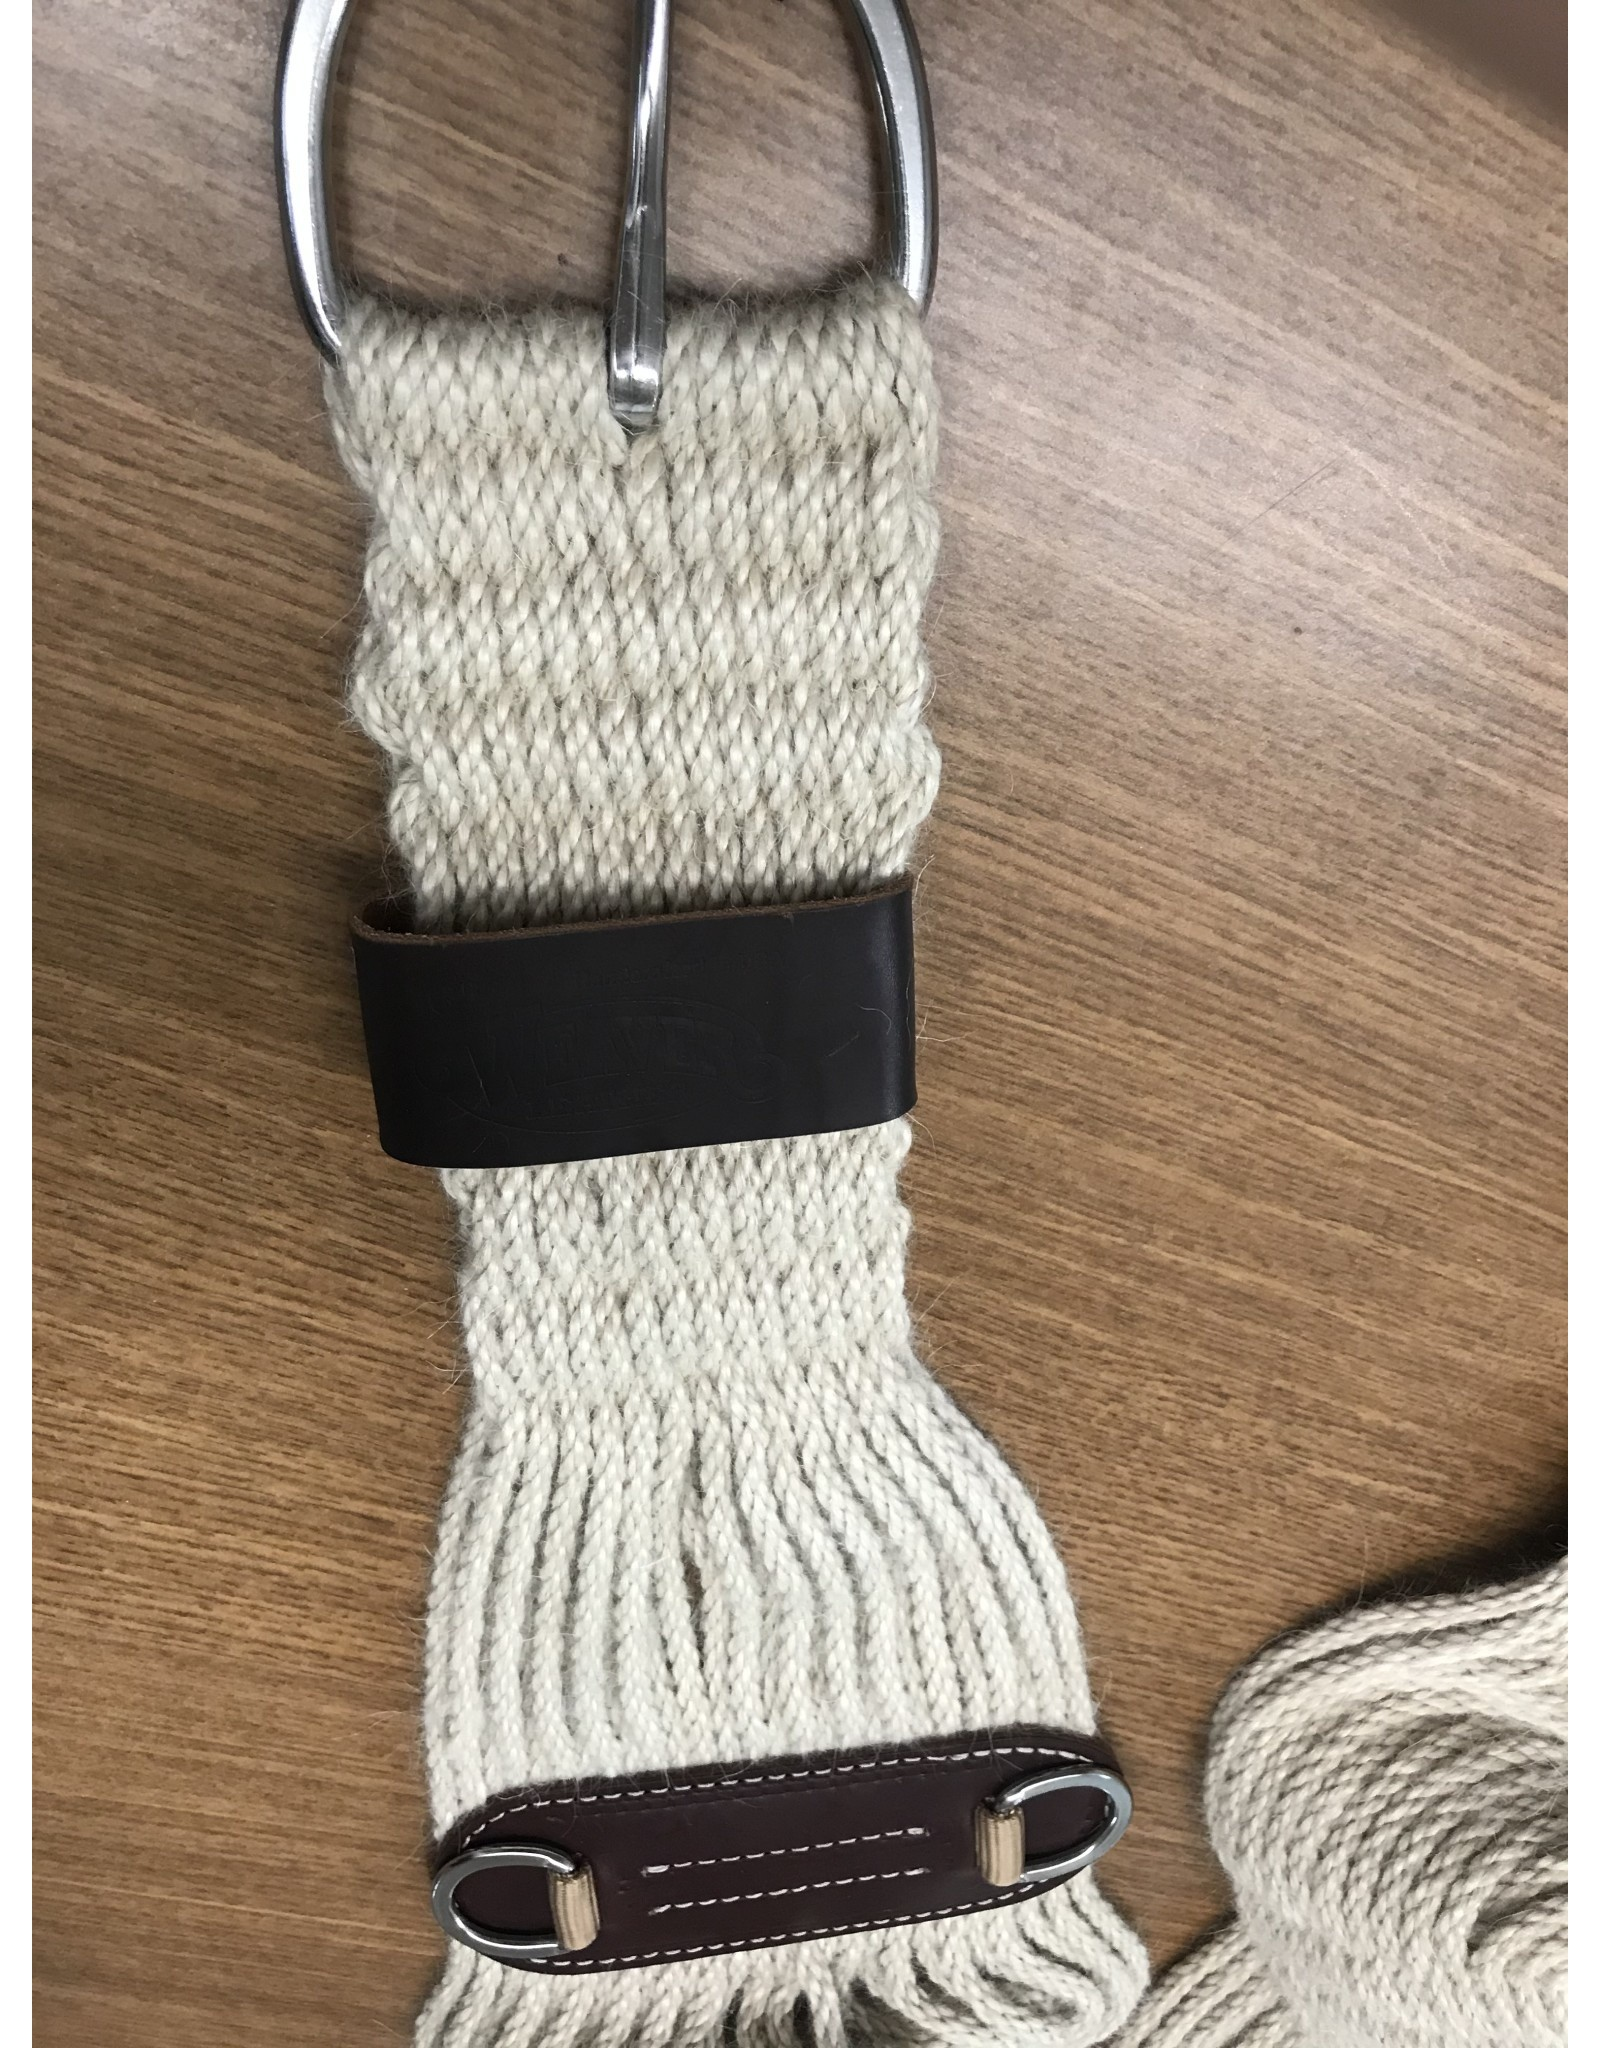 CIN* 100%  Mohair Roper Cinch - 36'' #35-2431 (mid cinch with leather under and one leather cinch holder basic hardware)